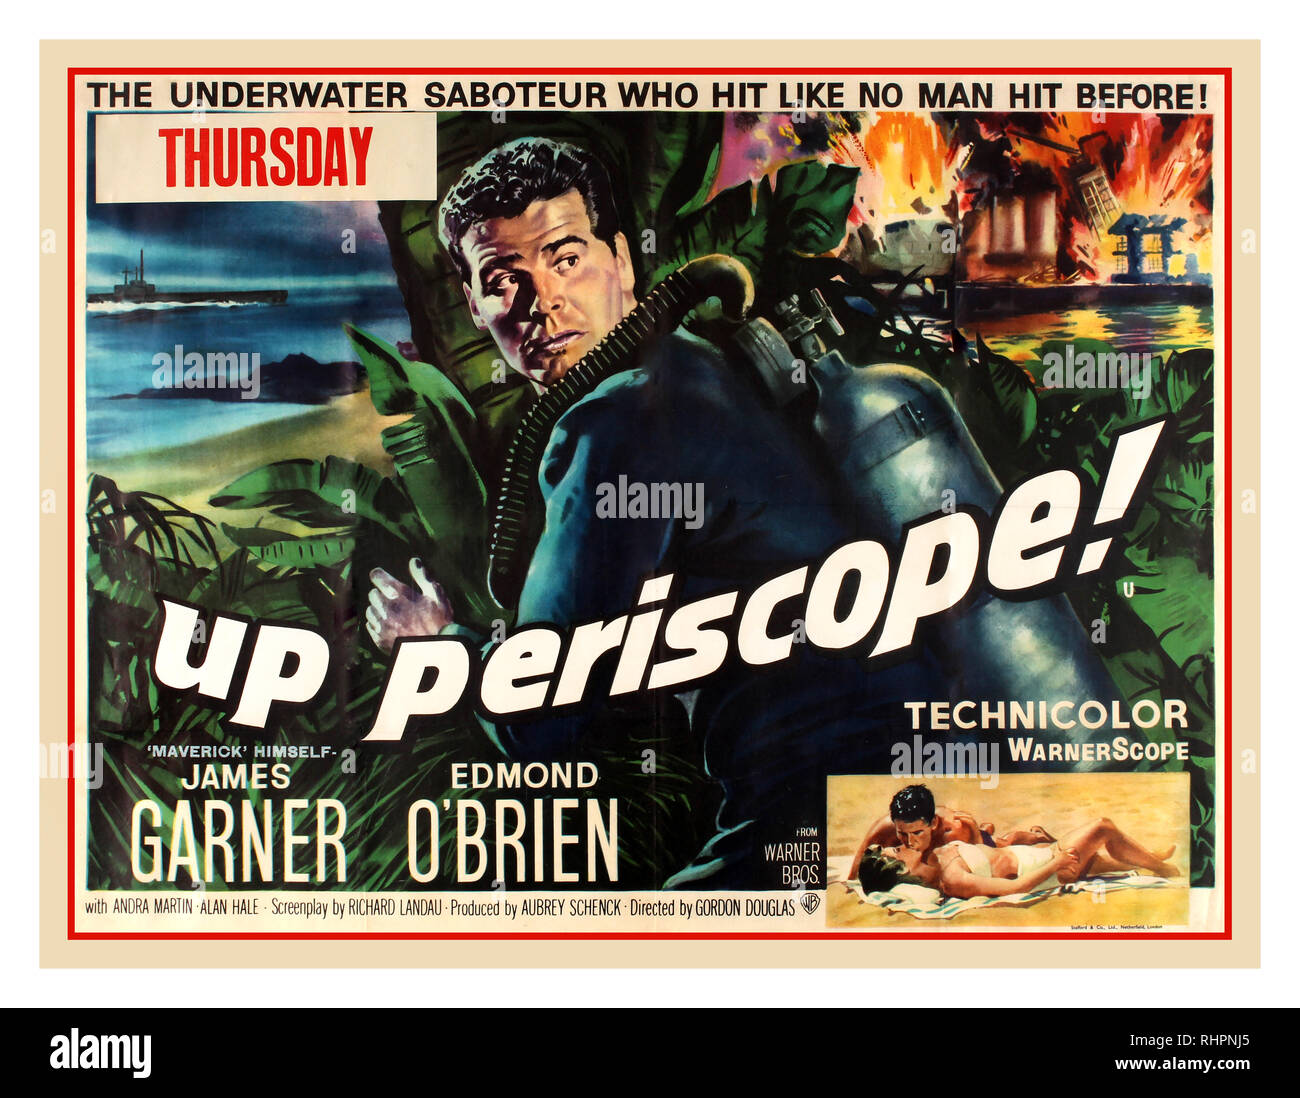 Vintage movie film poster for the UK release of 'Up Periscope', a 1959 World War II film drama directed by Gordon Douglas and starring James Garner, Edmond O'Brien, Andra Martin and Alan Hale, Jr. The film was made in WarnerScope and Technicolor, distributed by Warner Bros., and produced by Aubrey Schenck. The film's screenplay was written by Richard H. Landau and Robb White, having been adapted from White's novel. In 1942, Navy Lieutenant Kenneth Braden from the underwater demolition team is sent to a Japanese island to photograph secret radio codes. UK. 1959 - Stock Image